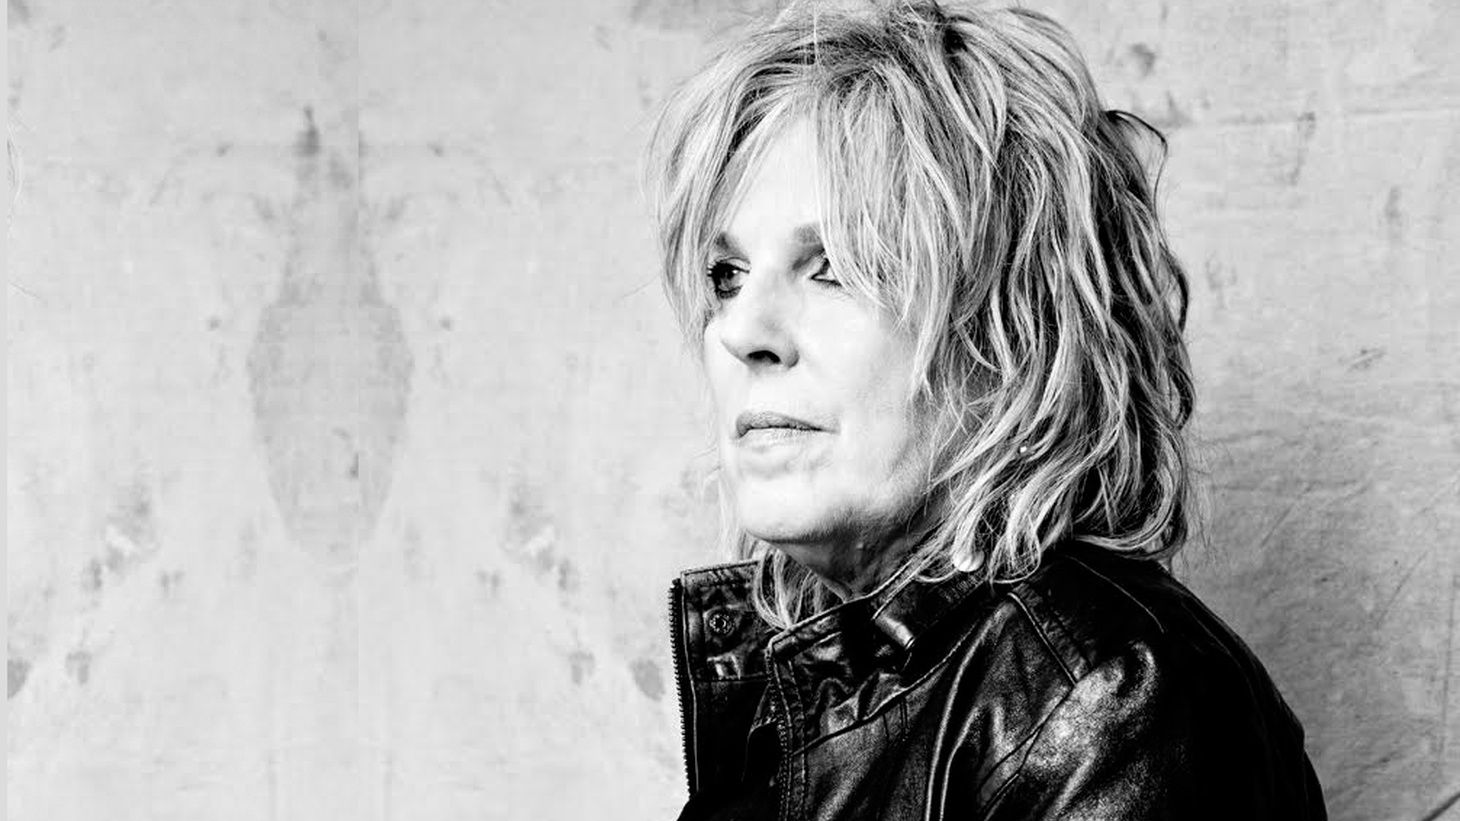 Lucinda Williams released one of the most critically acclaimed albums of her career with The Ghosts of Highway 20.